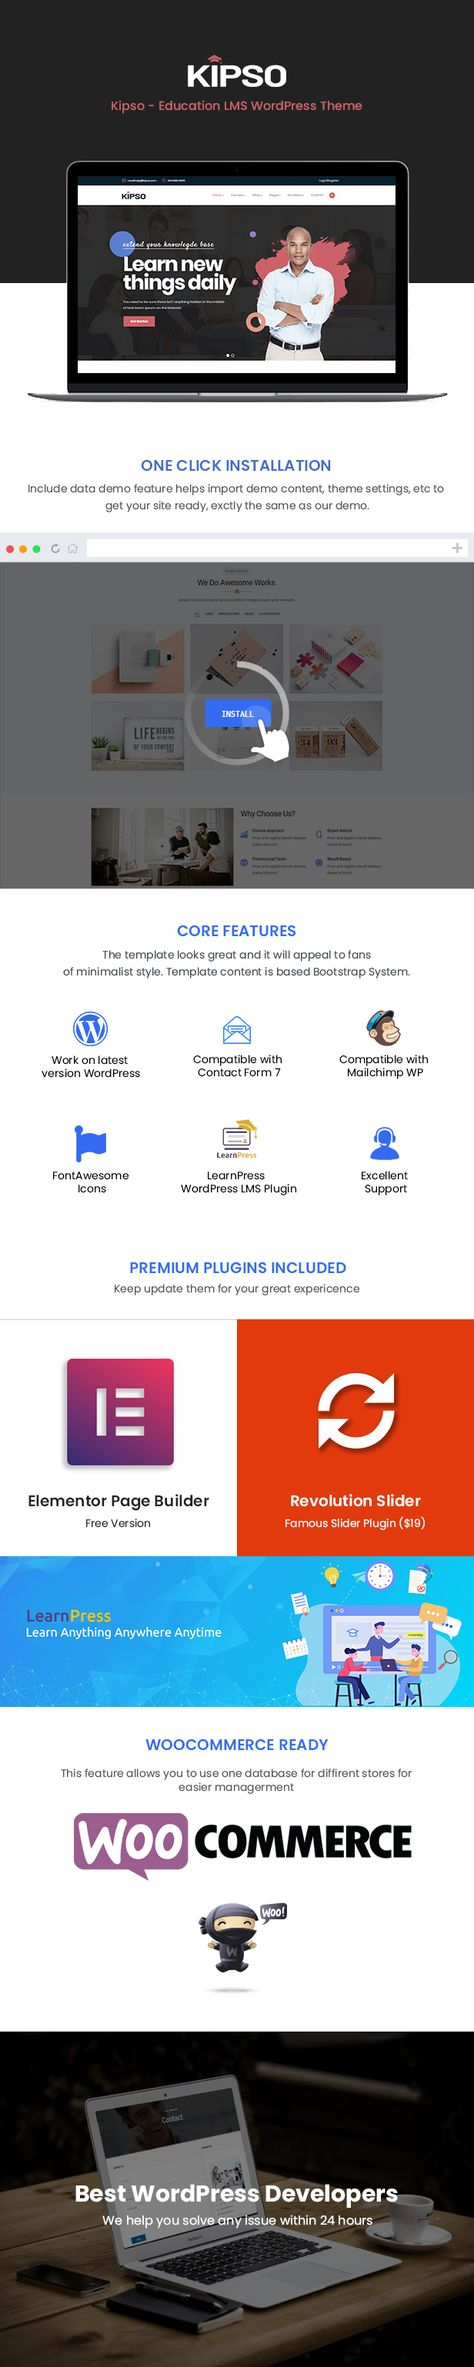 Kipso - Education LMS WordPress Theme